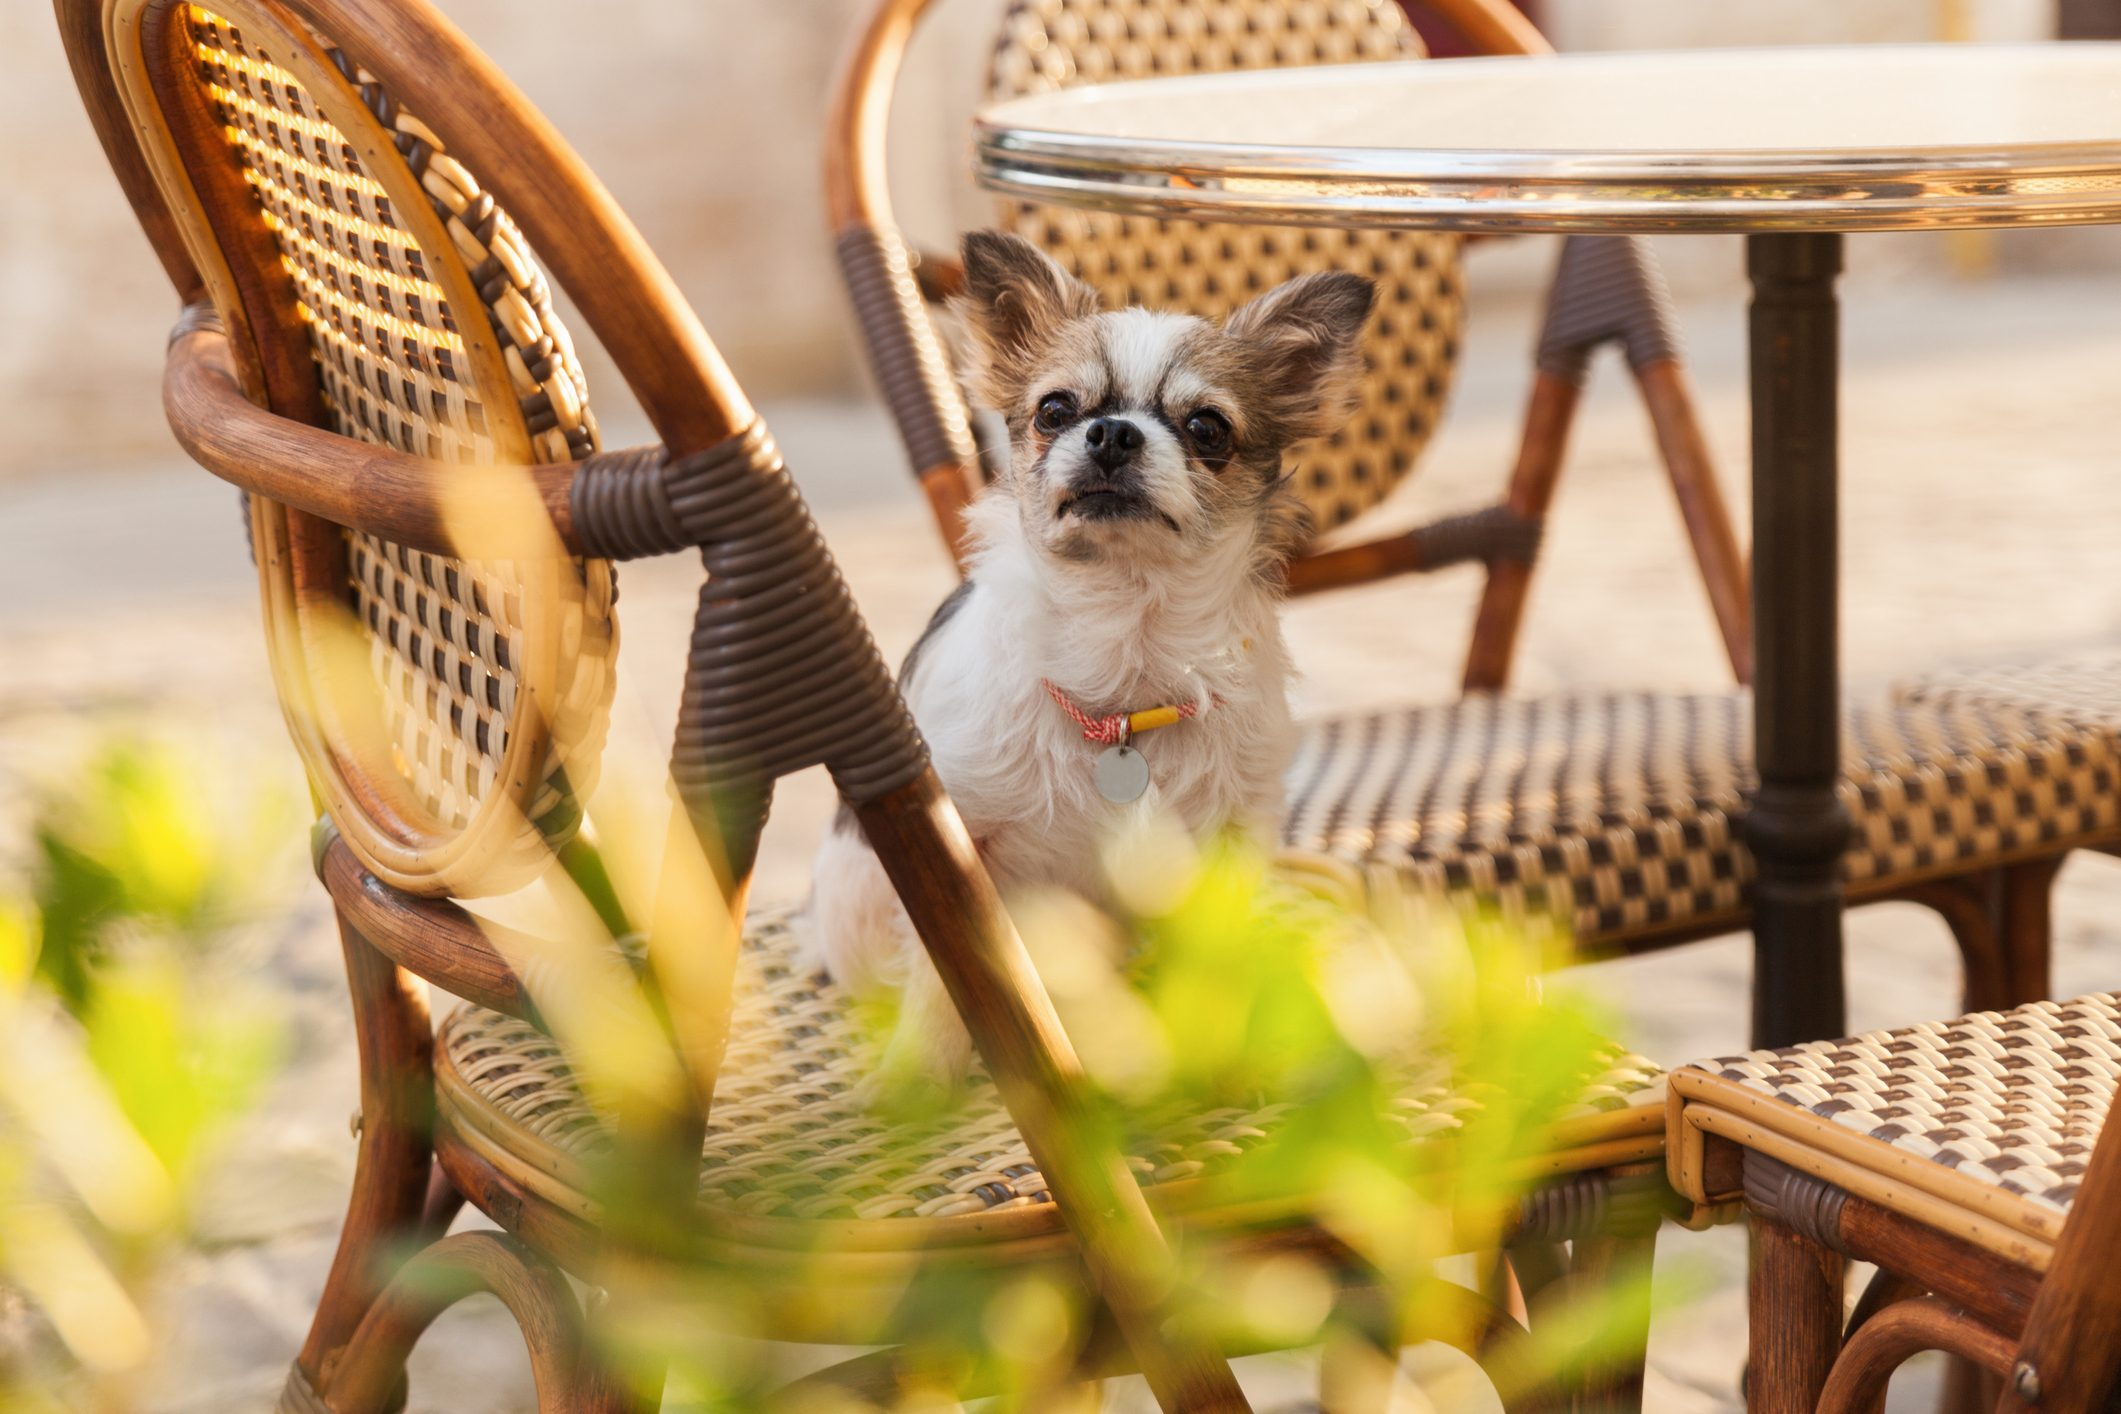 Cute chihuahua young dog in outdoors cafe with chairs and green plants in pots in old city downtown. Summer morning solar bright effect. Pets friendly vacations travel concept.